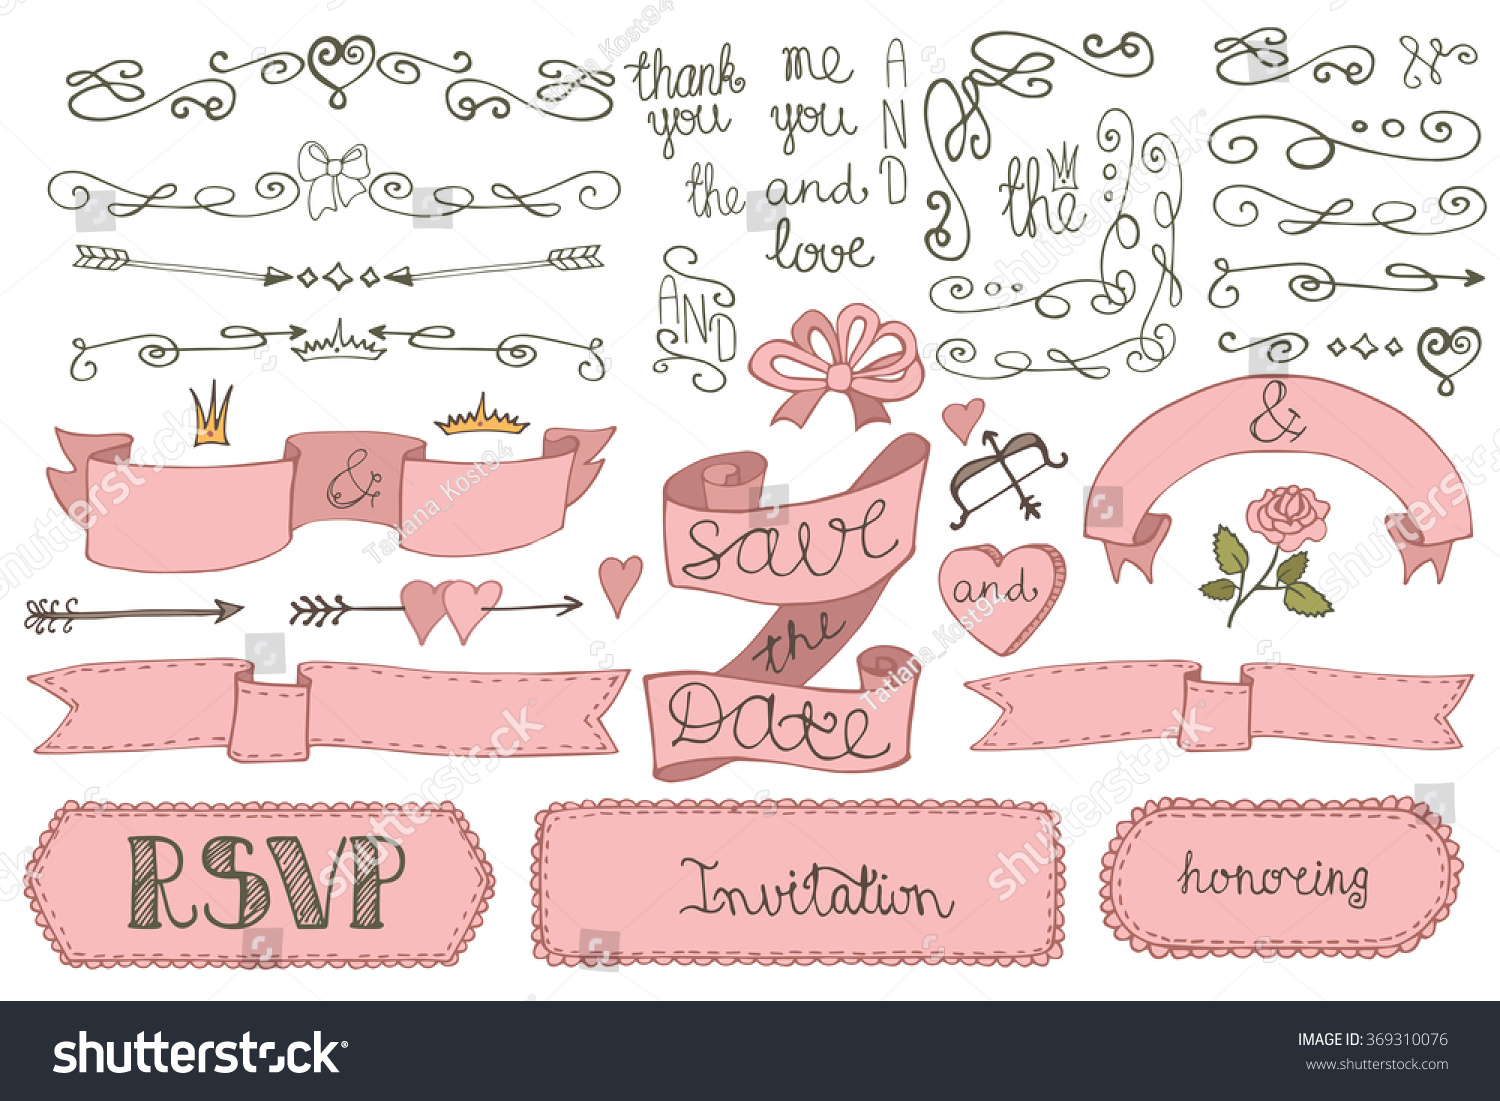 Wedding decoration setdoodles borderlove decor elements stock wedding decoration setodles borderlove decor elements setr design templates junglespirit Choice Image